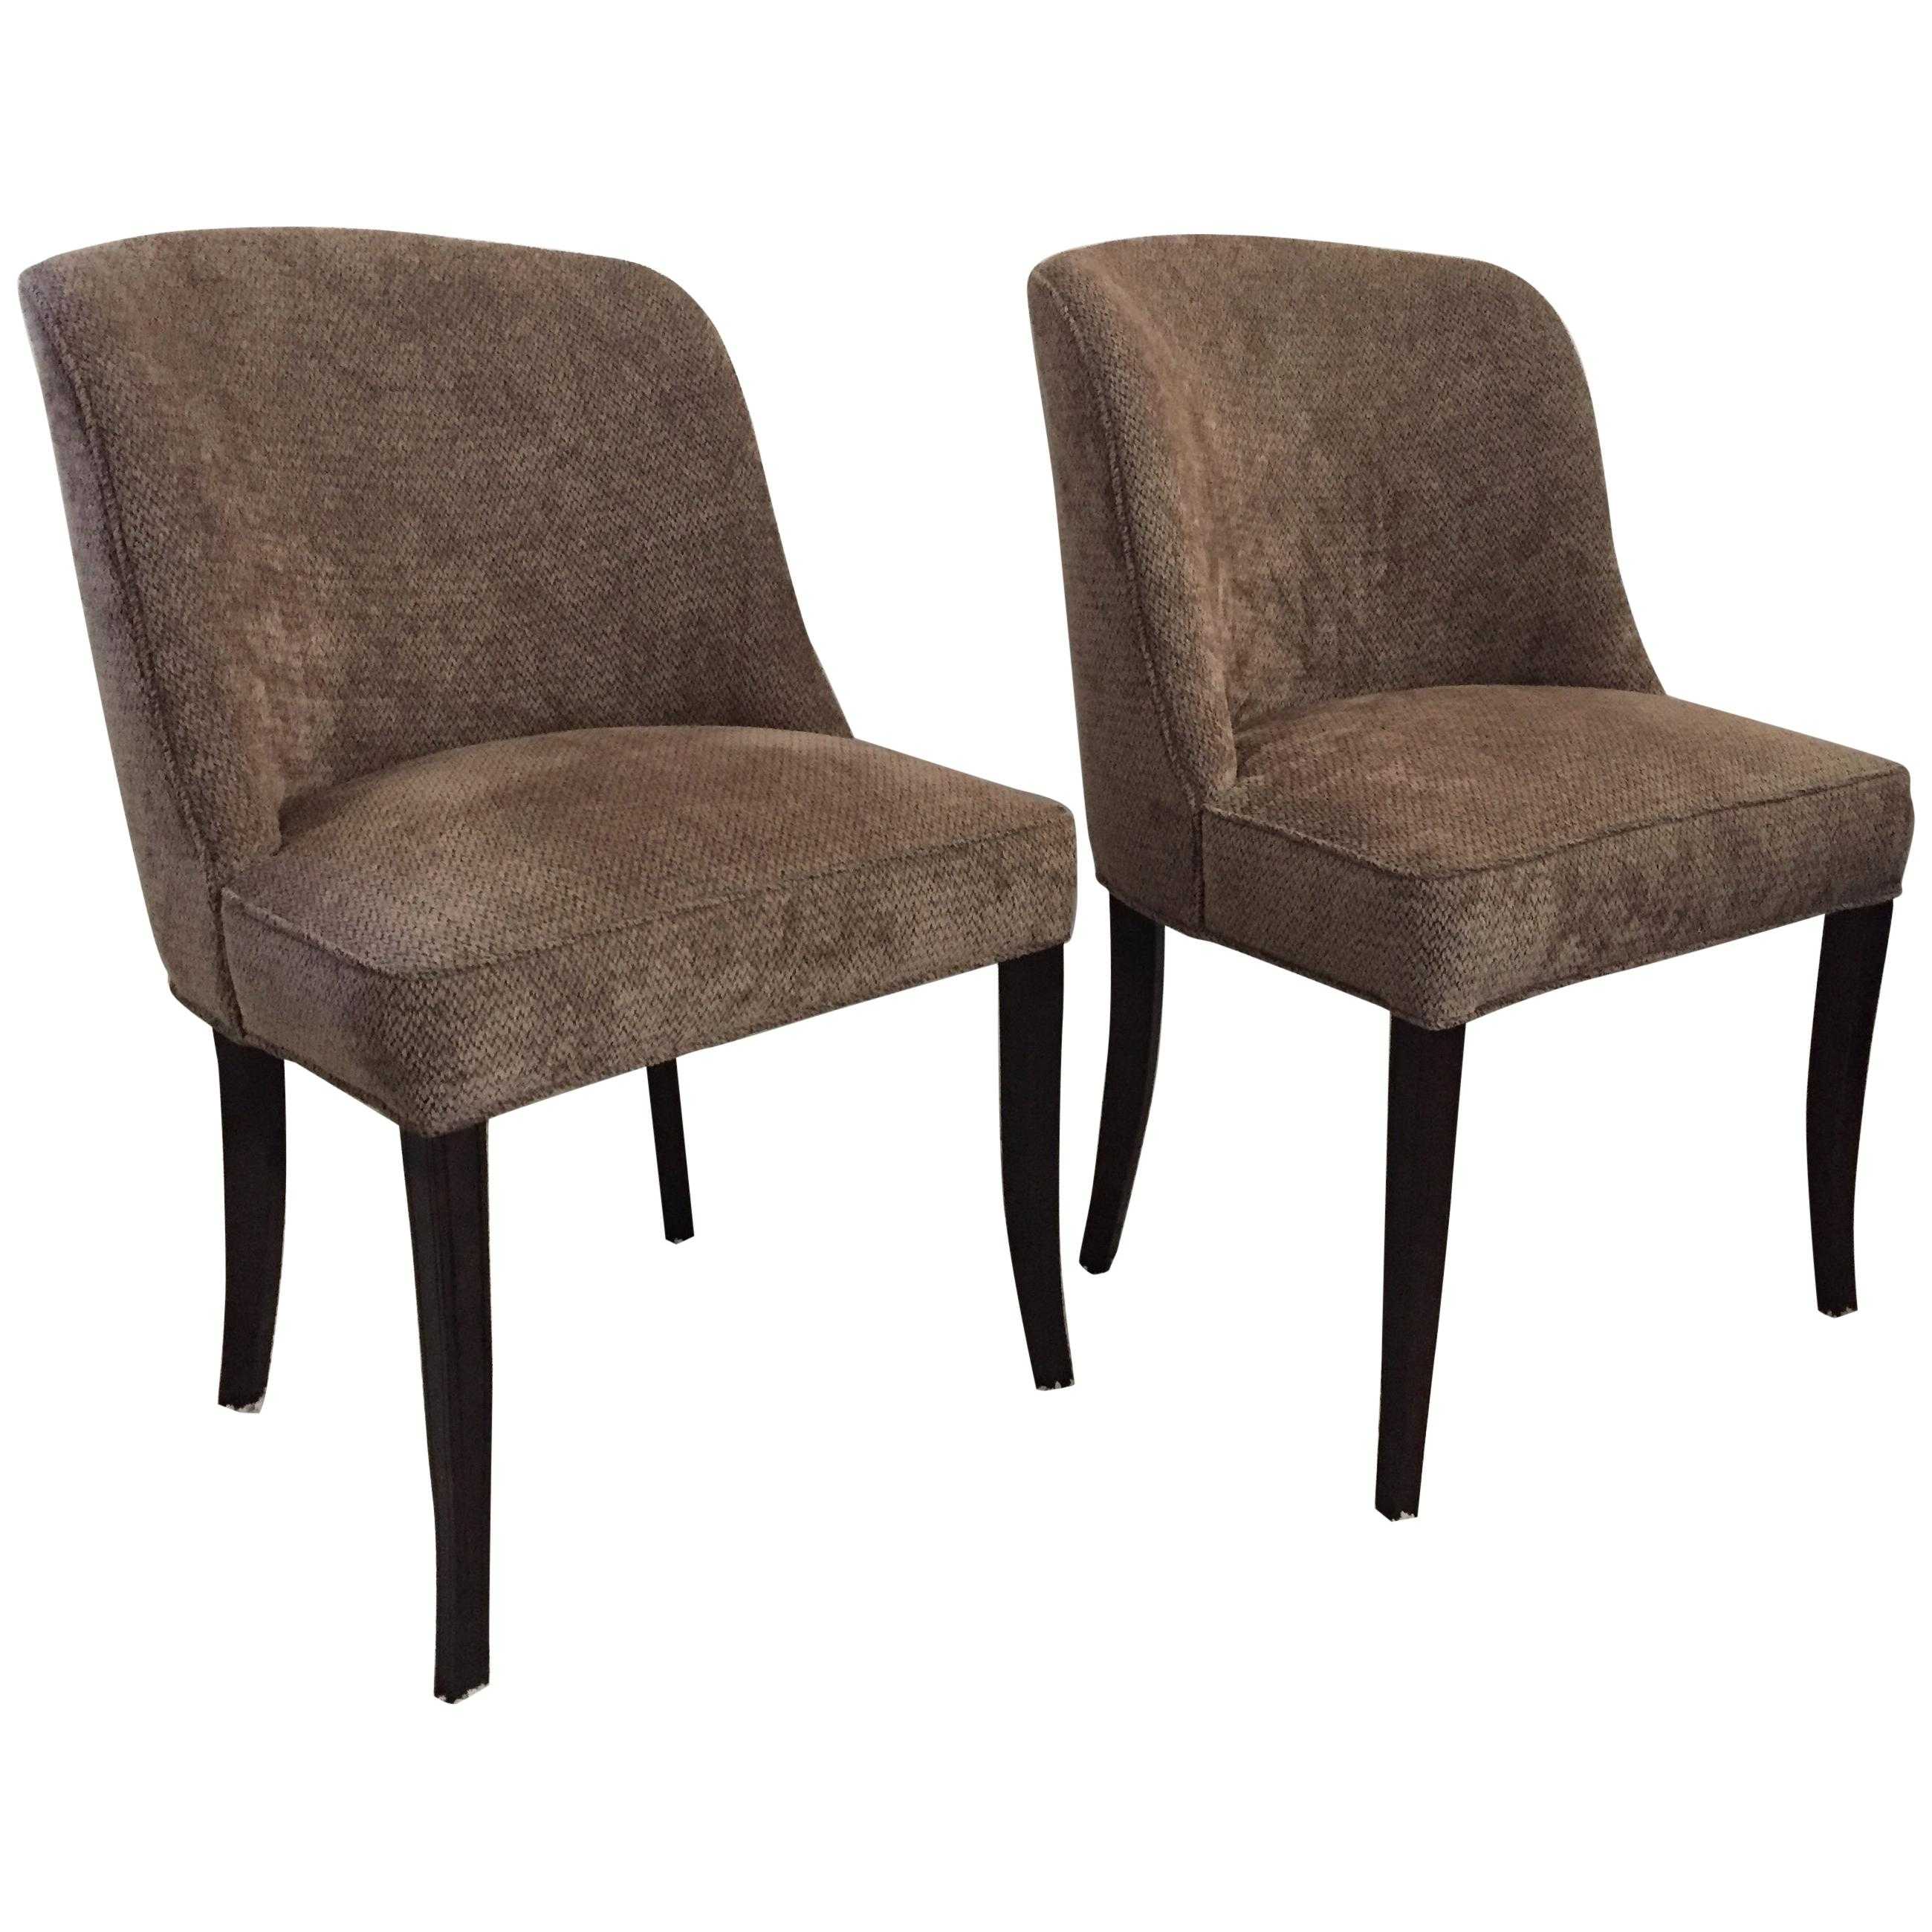 Pair of Tommi Parzinger Chairs/ Captains Dining Chairs Charek Modern